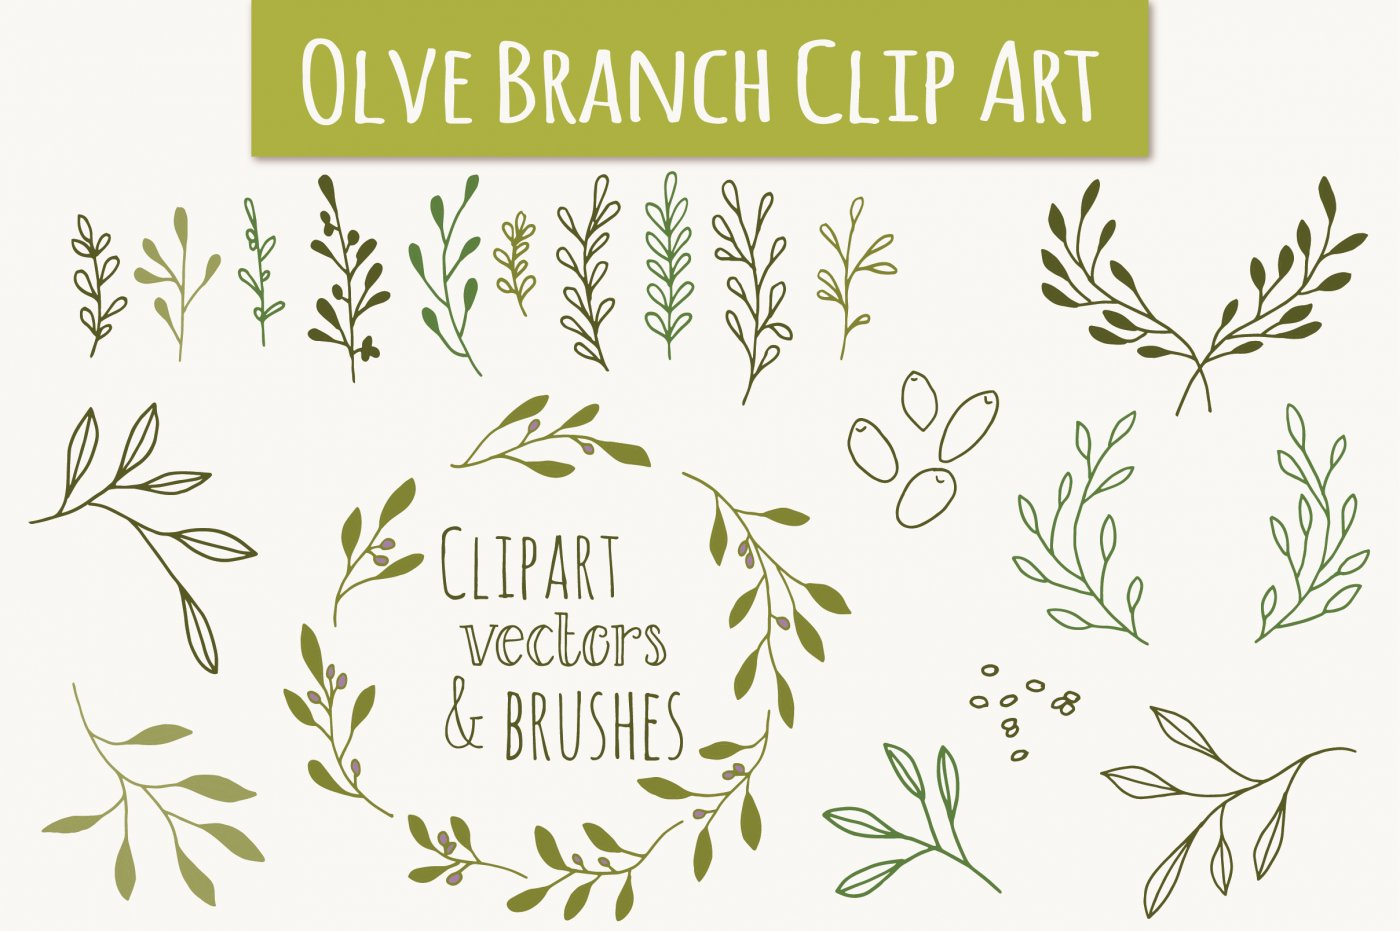 1400x931 Olive Branch Clip Art Amp Vectors By Itty Bitty Paper Co